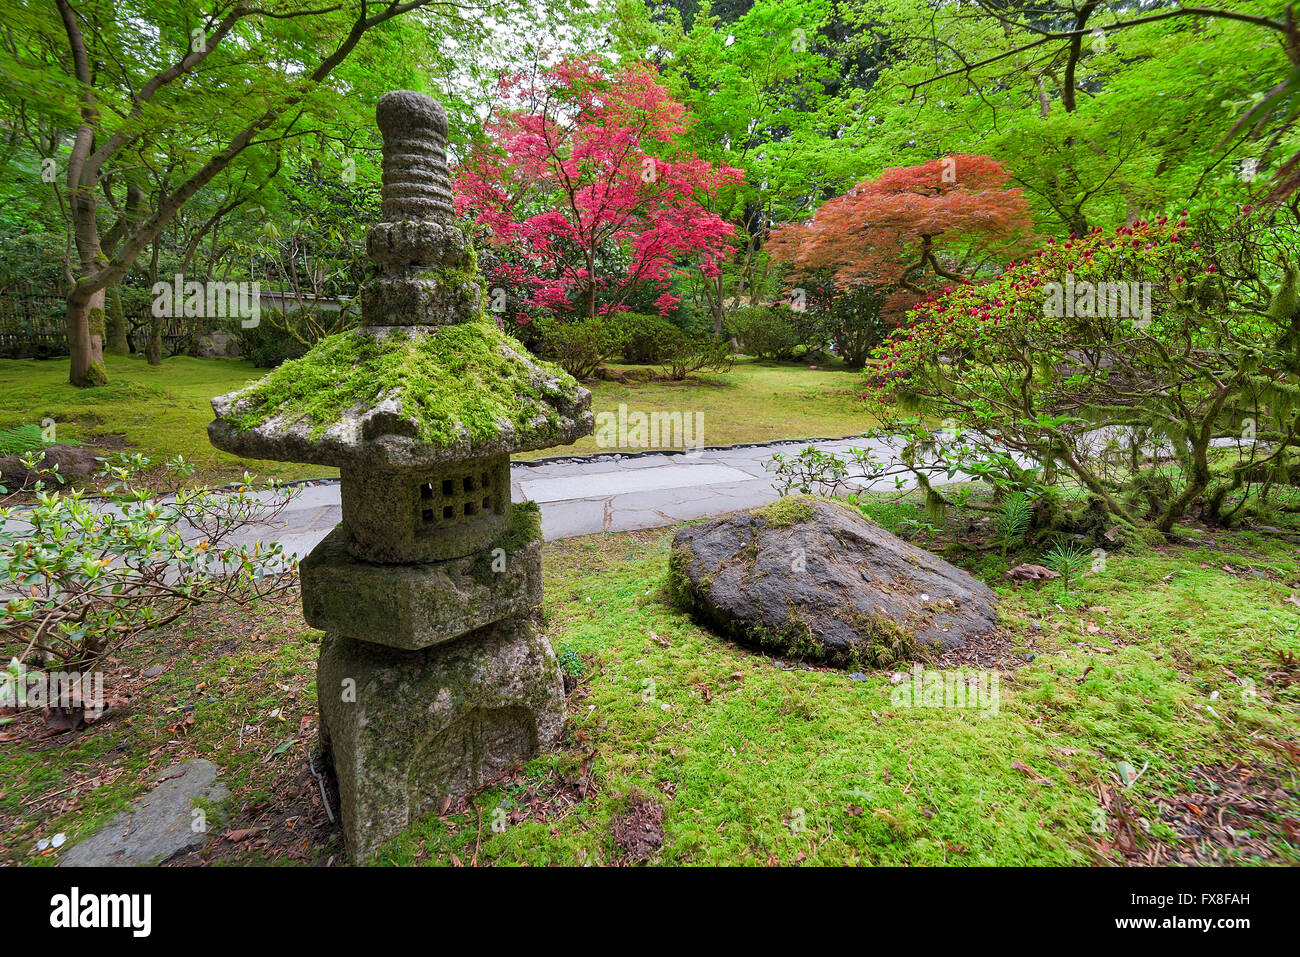 Old Stone Lantern In Japanese Garden With Trees And Shrubs Landscape In  Spring Season   Stock